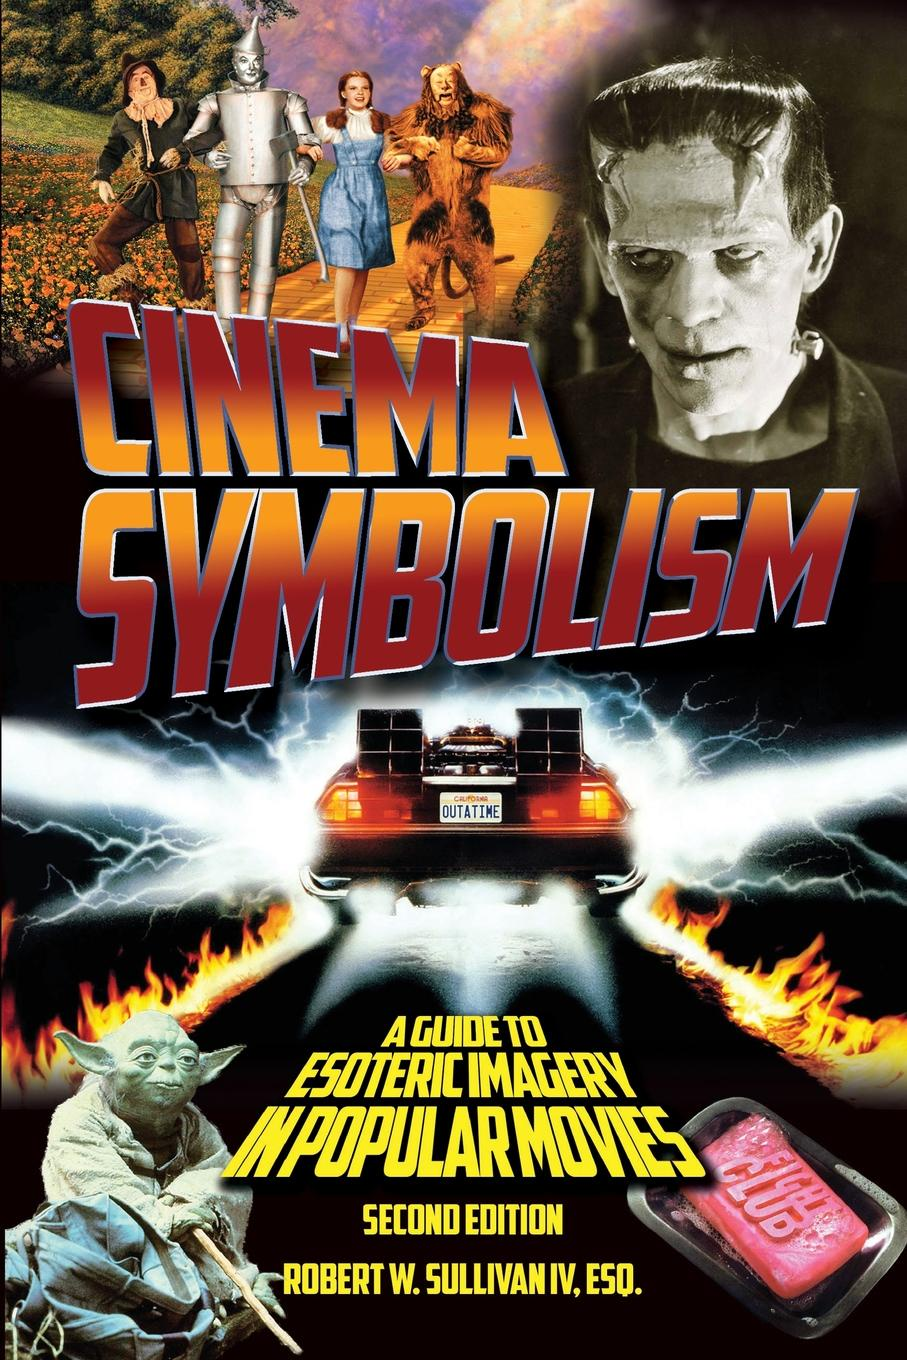 Robert W. Sullivan IV Cinema Symbolism. A Guide to Esoteric Imagery in Popular Movies, Second Edition